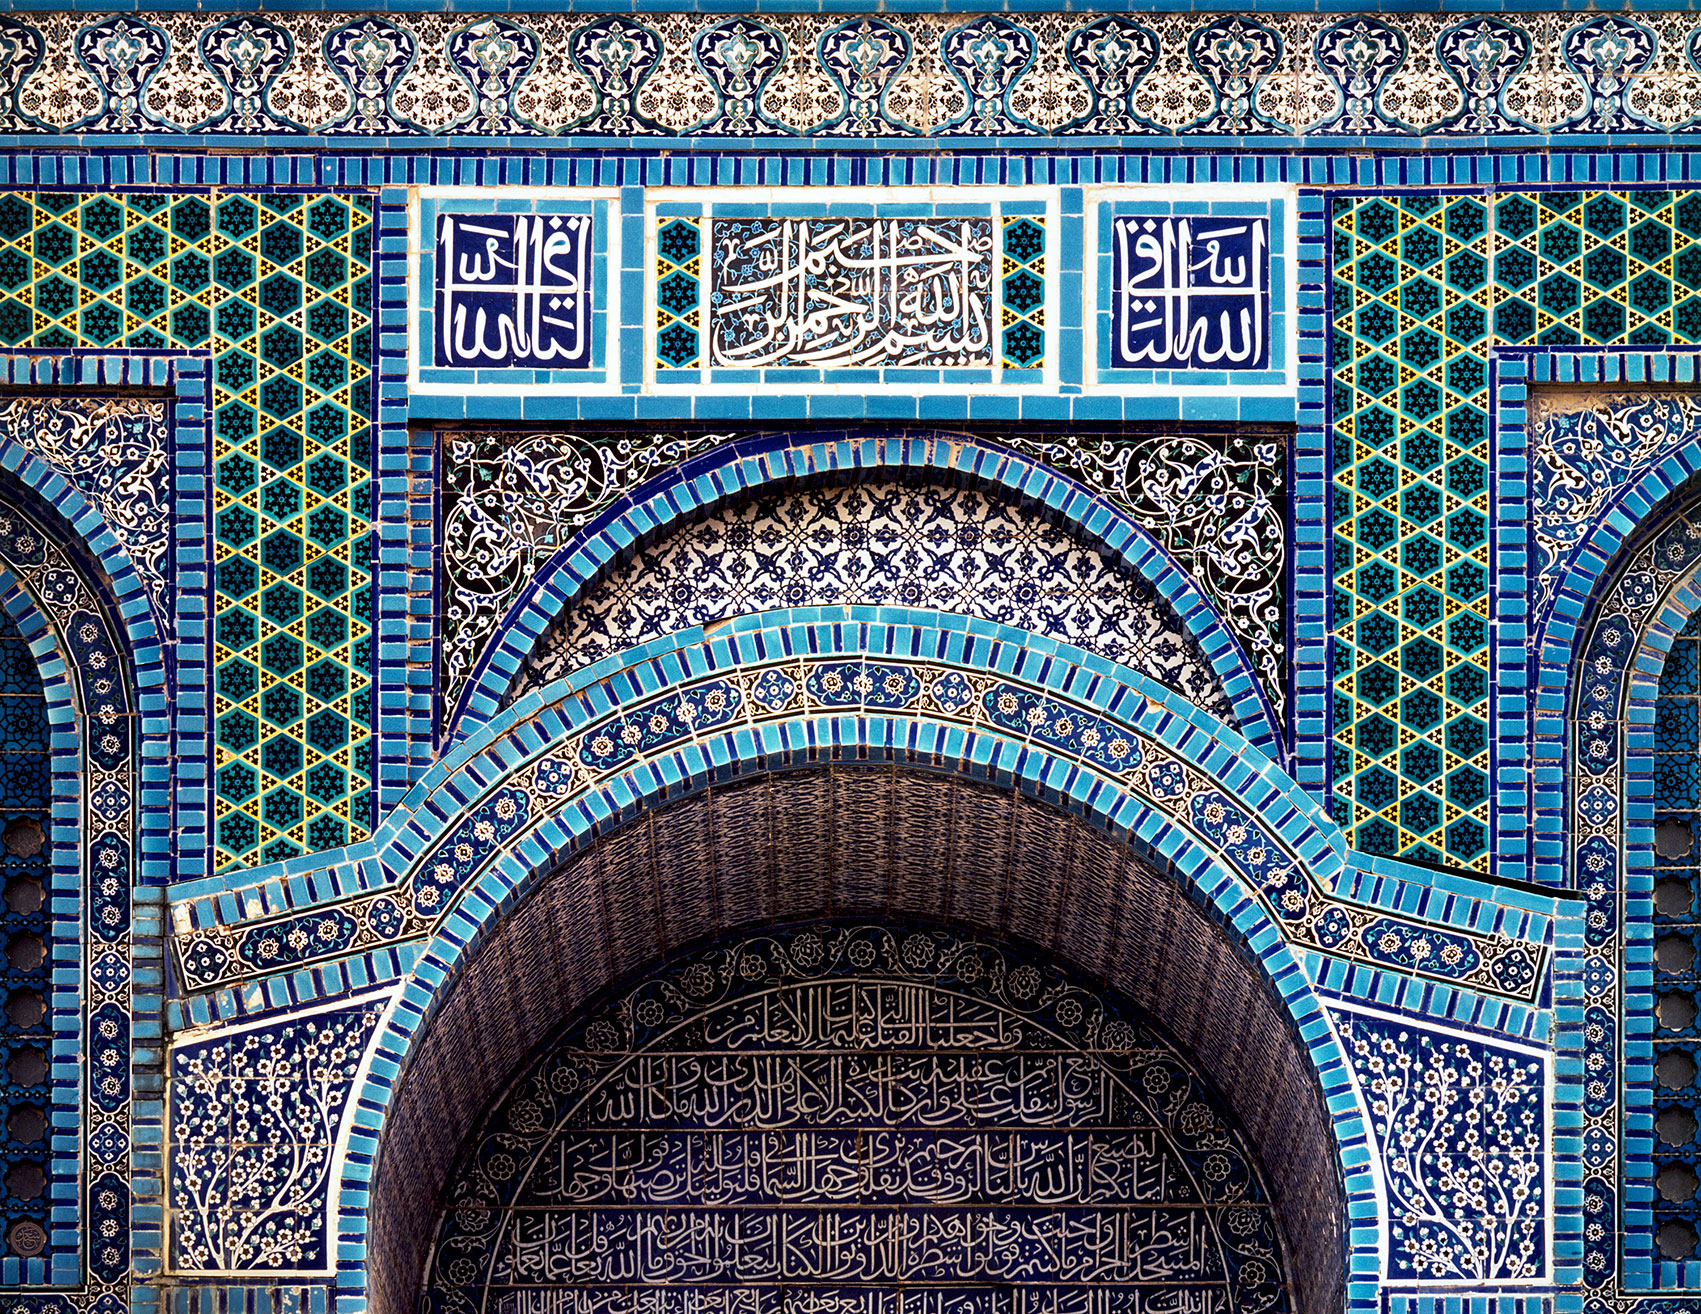 Arabic calligraphic inscriptions on glazed tiles of the <i>Qubbat al-Sakhra</i> / Dome of the Rock in Jerusalem, alQuds. Palestine, Israel.